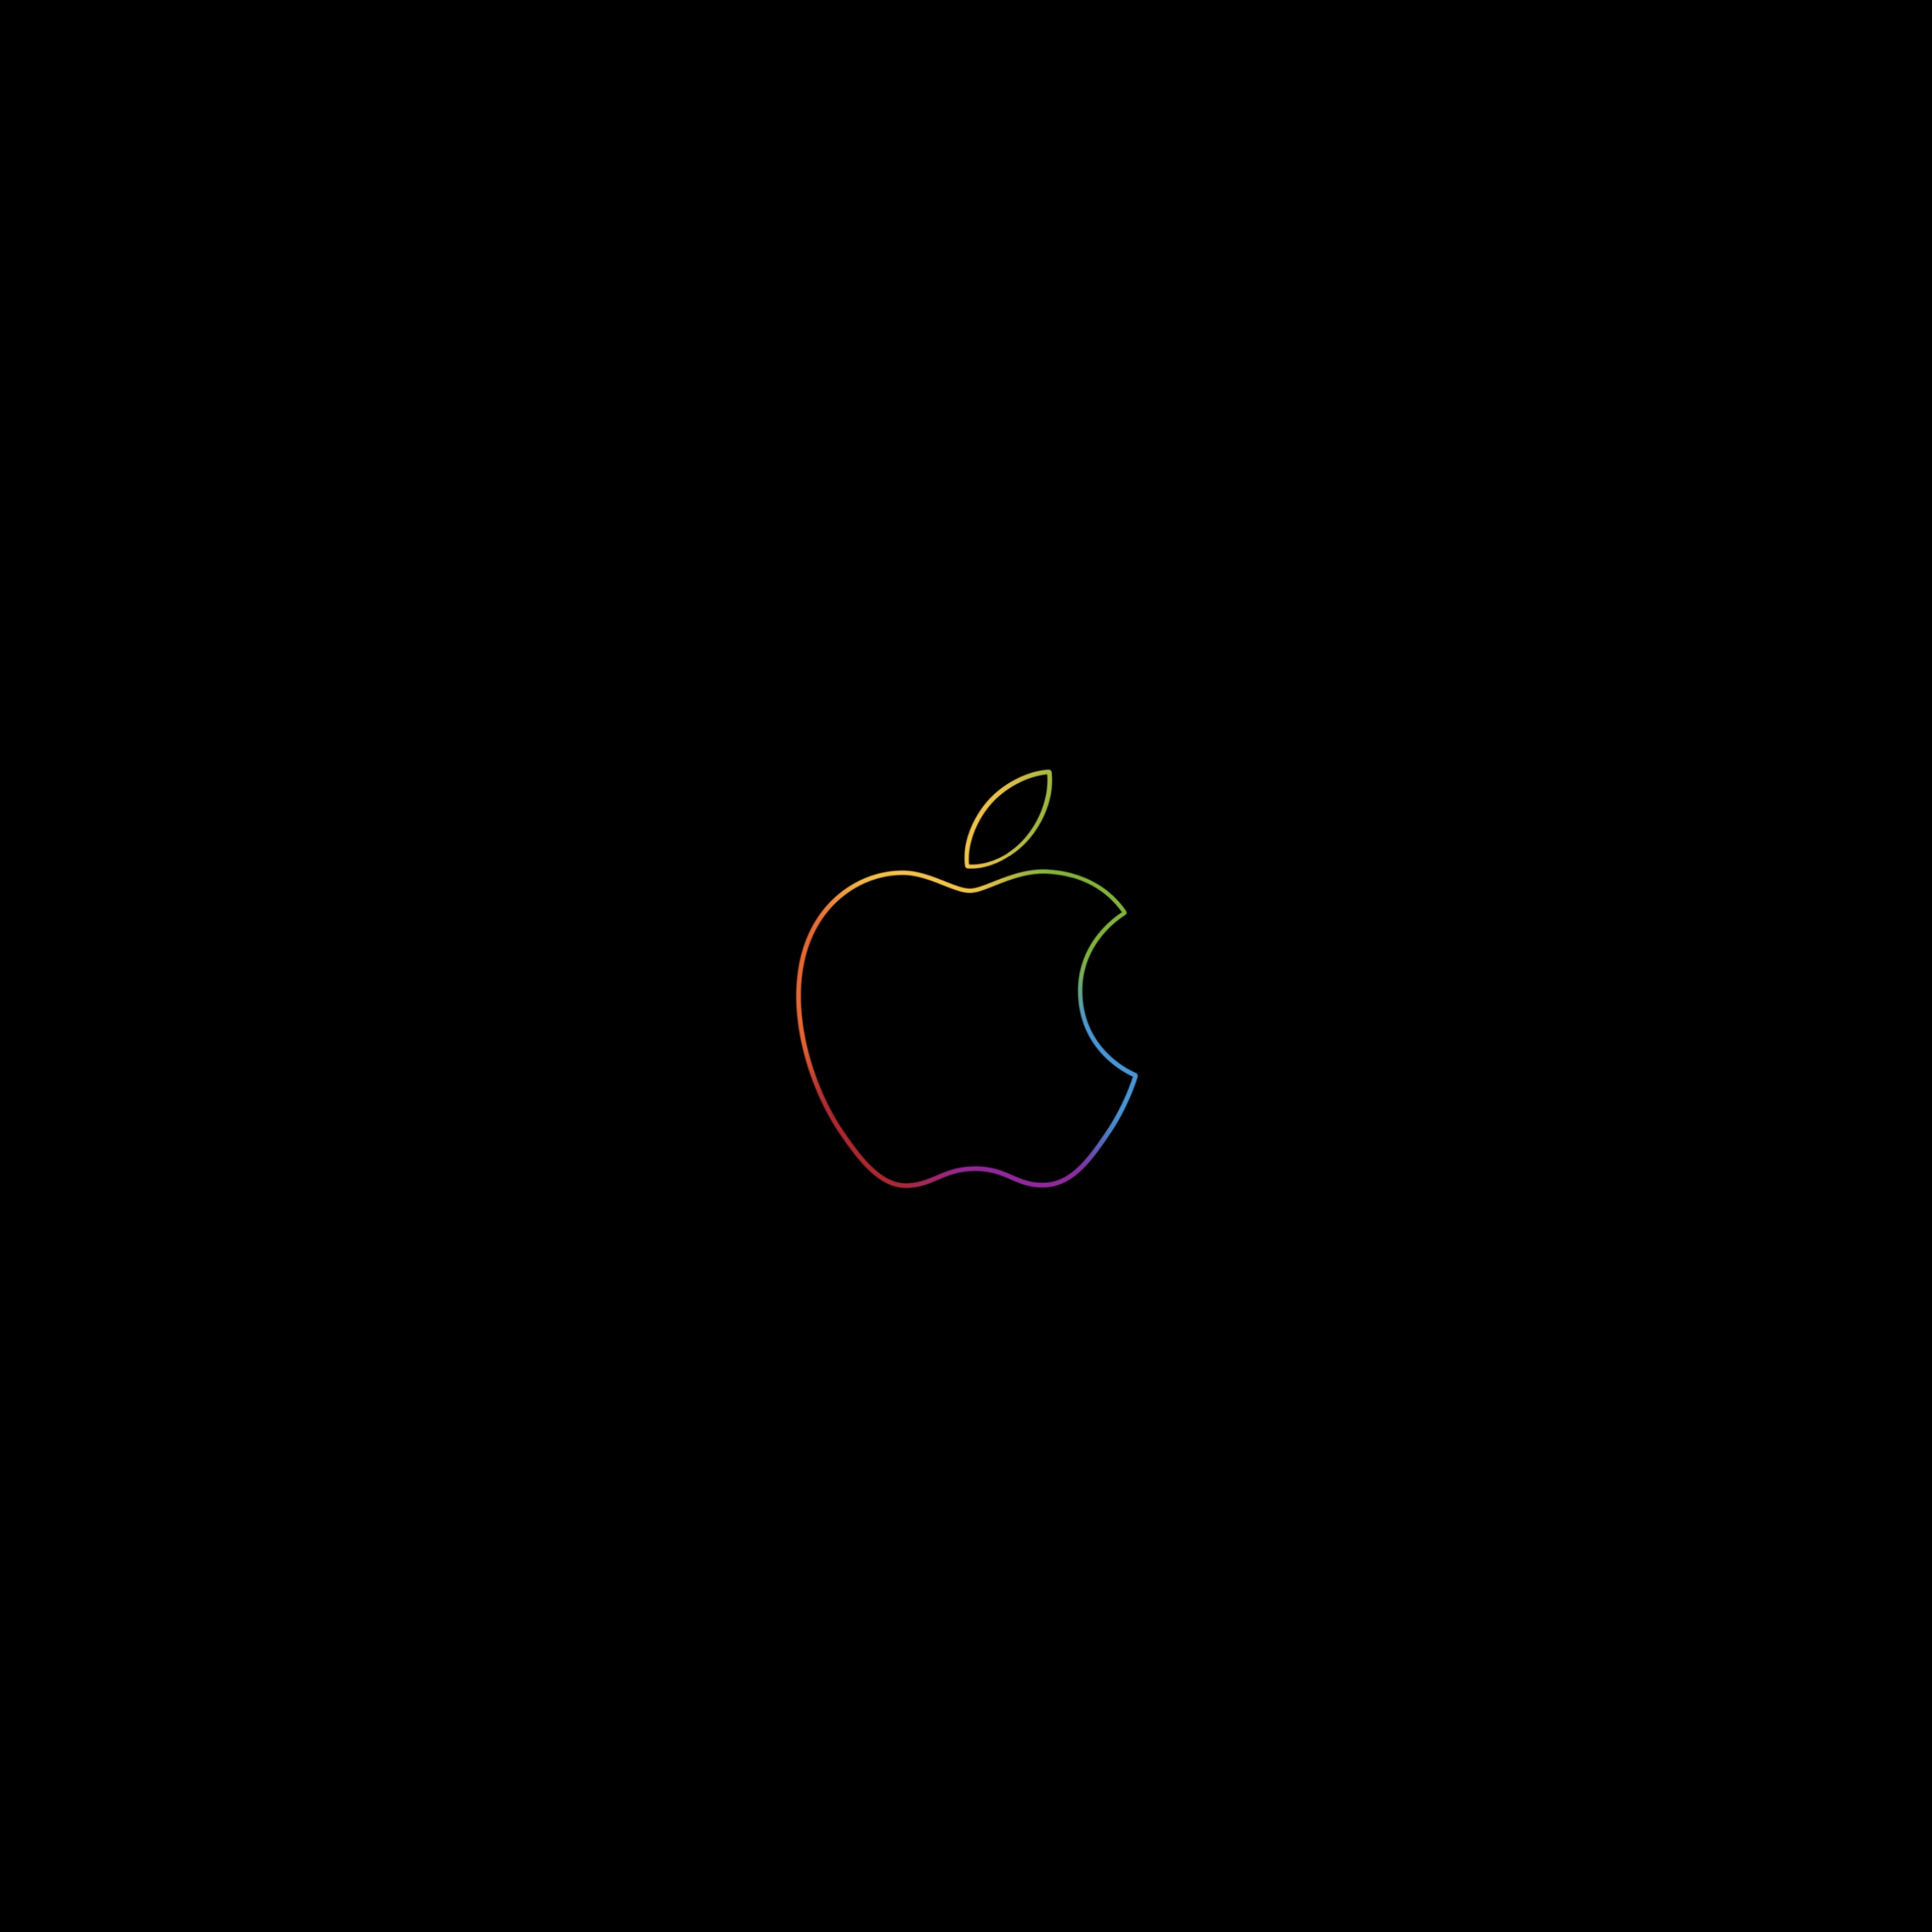 Apple Logo 4k Wallpaper Colorful Outline Black Background Ipad Hd Technology 789